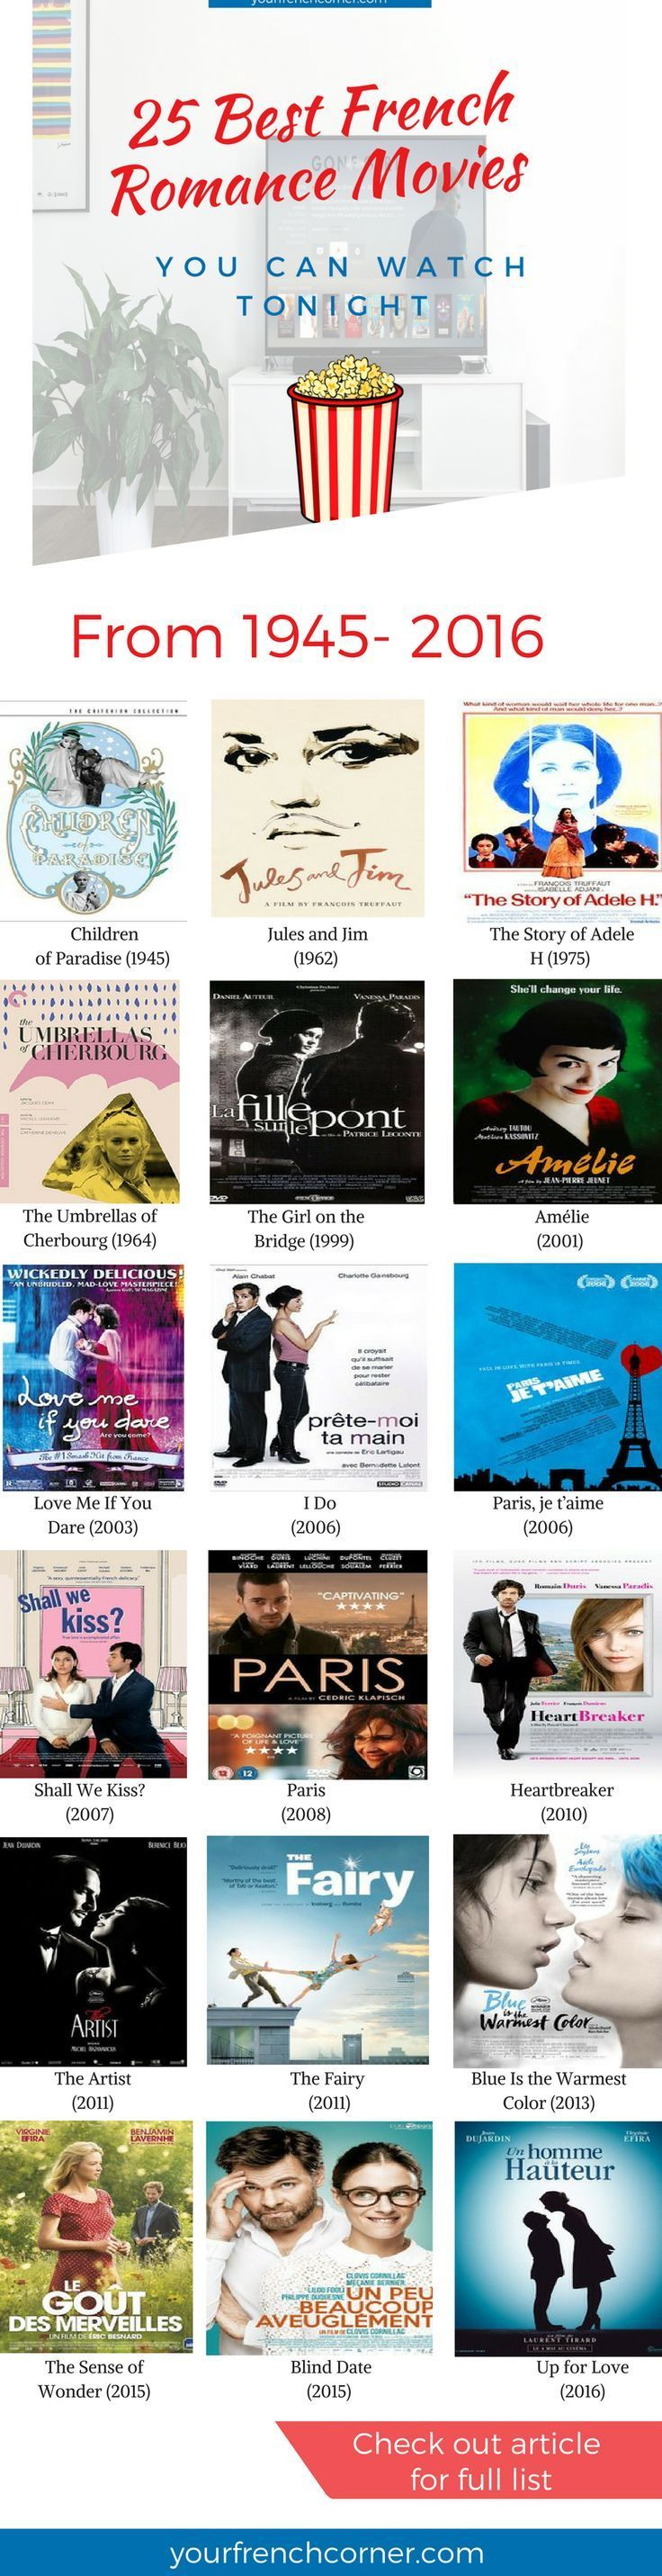 25 Best French Romance Movies You Can Watch Tonight | Repin for later #learningfrench #francophile #frenchmovies #easyfrenchlanguage